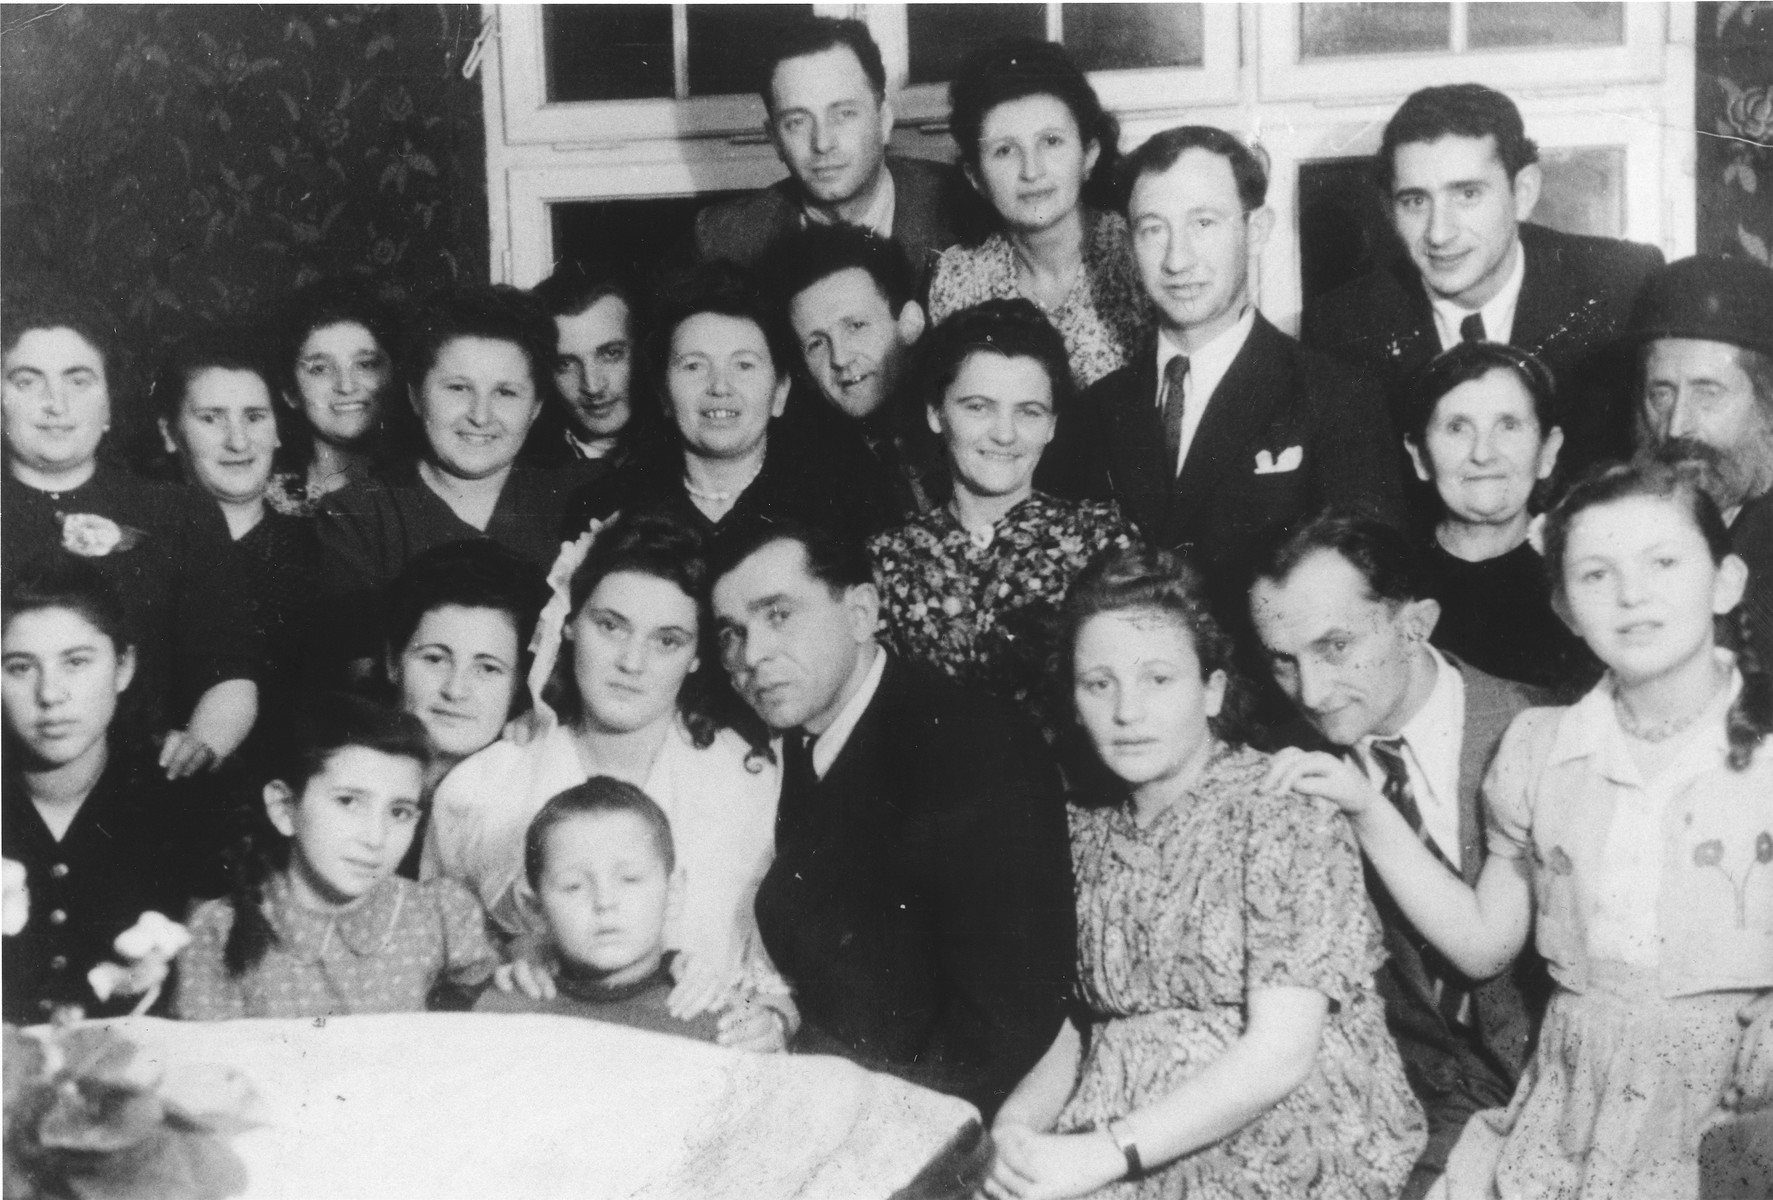 Group portrait of family and friends at the first wedding in the Ulm displaced persons camp. The bride and groom are Dzunia and Joe (Yitchak) (Itche) Storch.   Also pictured from right to left n the front row are: Lila Rajs, Meyer Fenig and Bina (Rajs) Fenig.  Chuma (Rajs) Fruchter is seated next to the bride on the left.  Directly behind the bride is Chaja Rajs.  To the right of Chaja are Hershel Rajs and Roshi (Rajs) Binder.  Behind them are Moishe Binder and Moishe Fruchter.